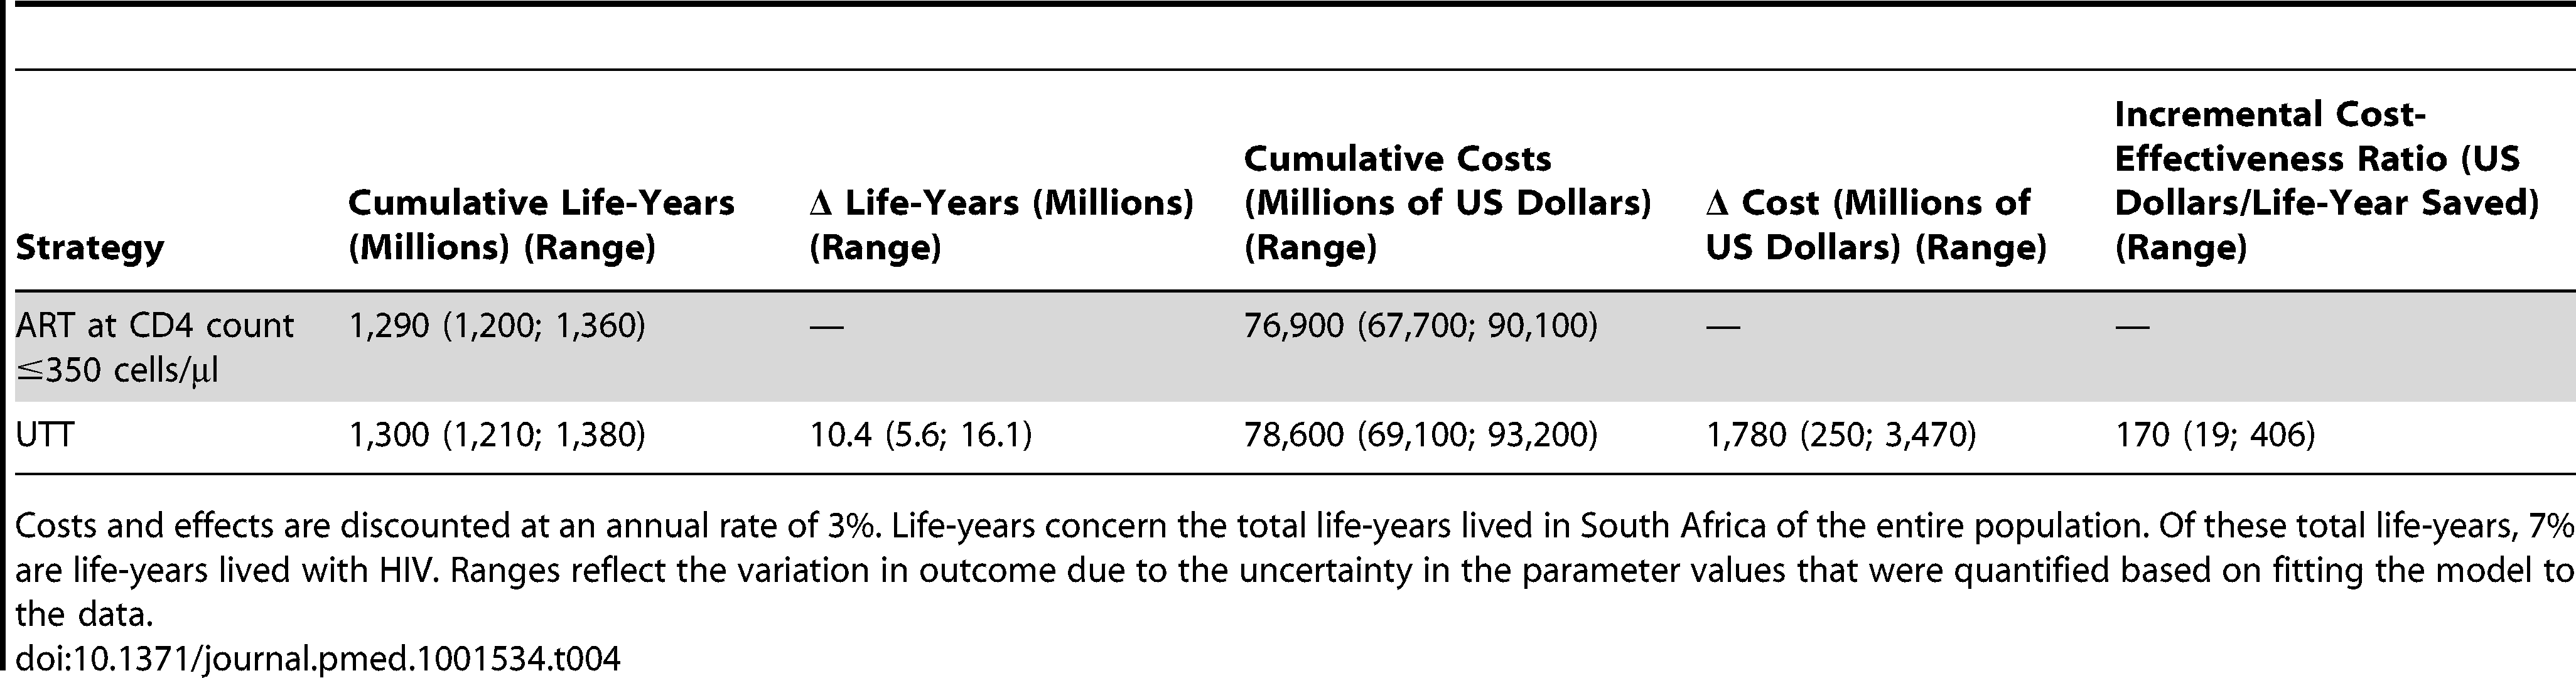 Effects, cost, and cost-effectiveness of universal test and treat versus continued scale-up of ART at CD4 count ≤350 cells/µl in South Africa over the period 2012–2050 (Model D).